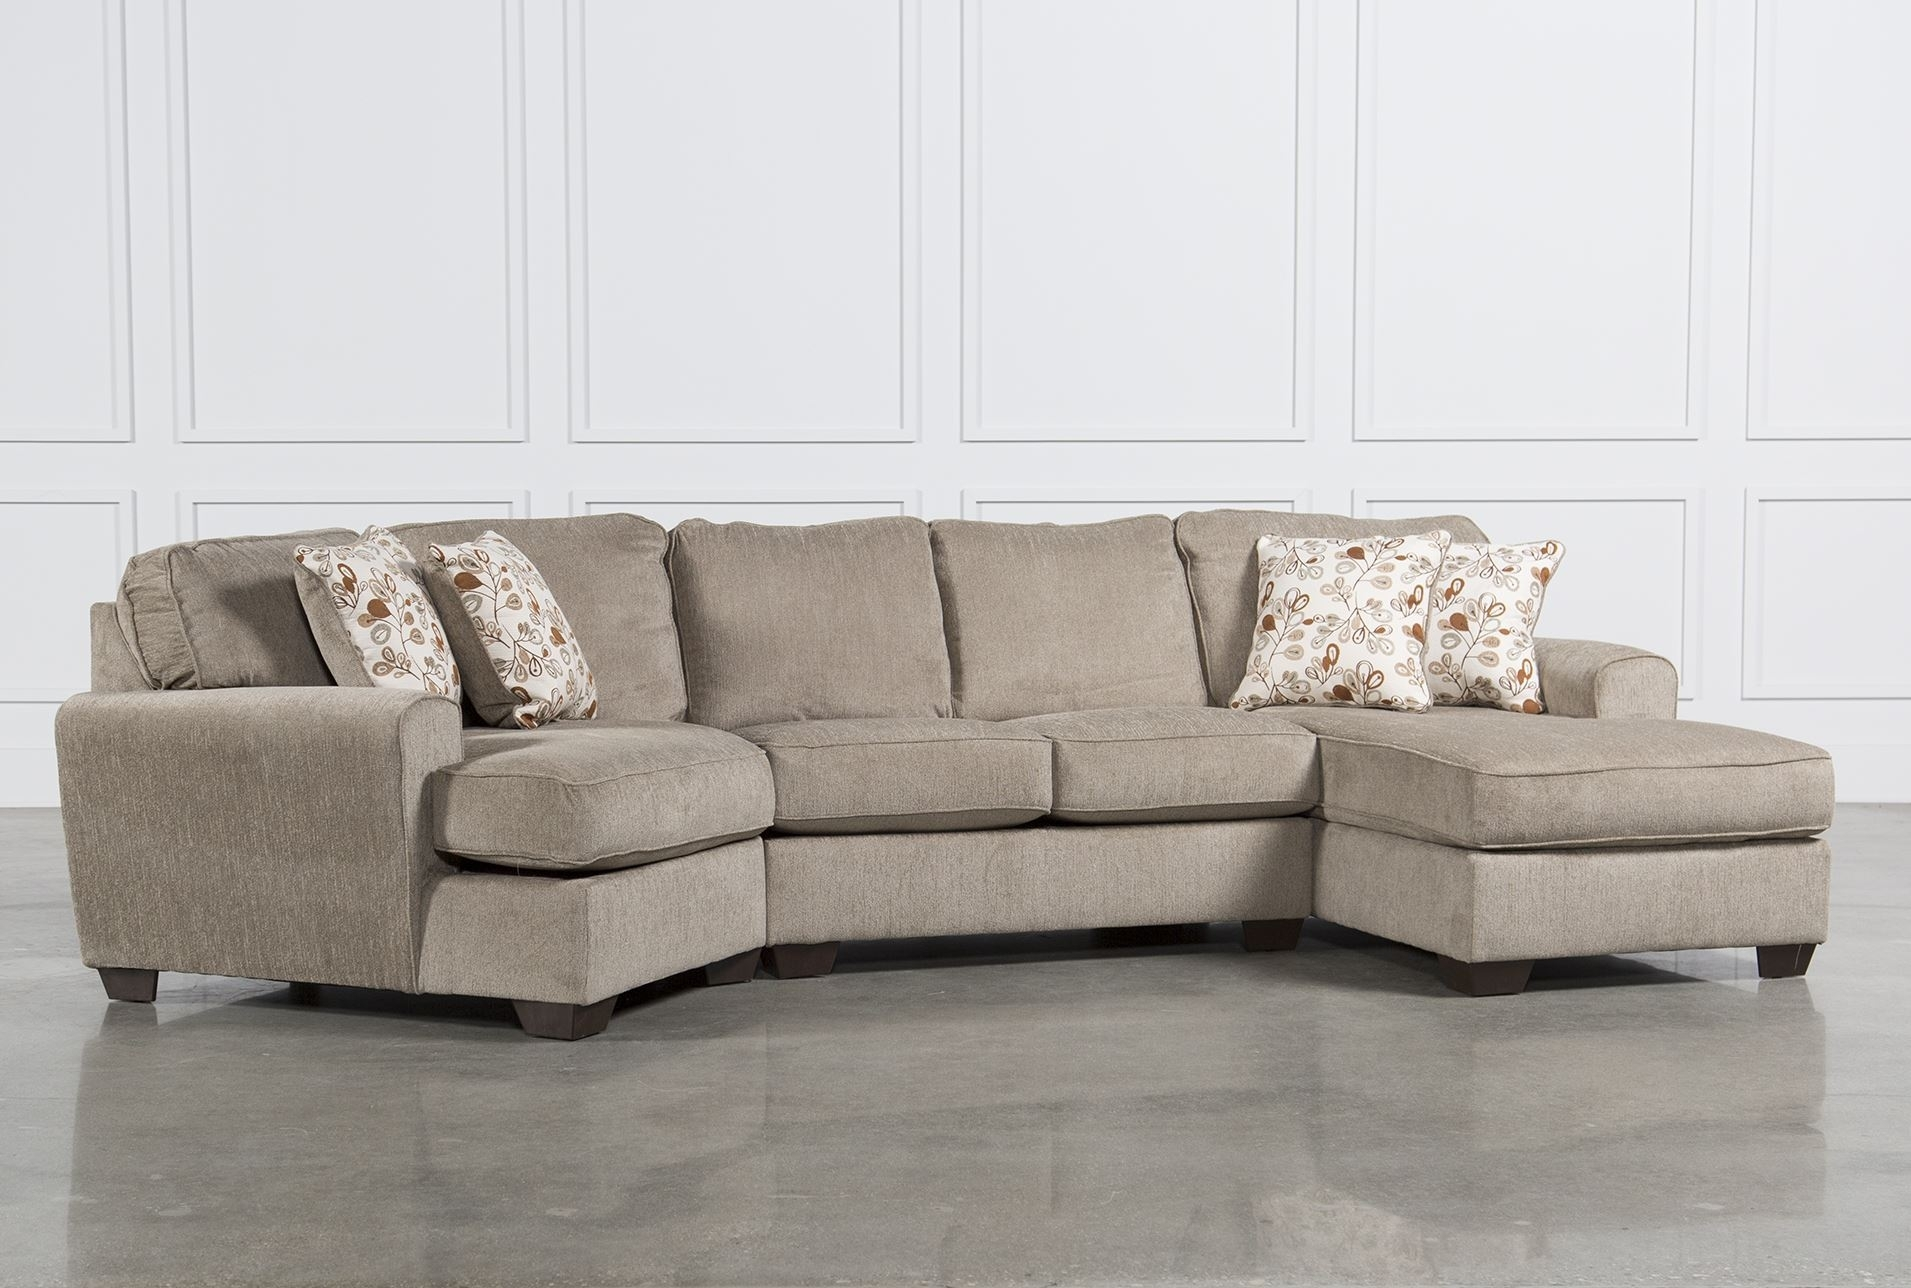 Furniture : Sectional Sofa Gta Sectional Couch El Paso Sectional Throughout El Paso Tx Sectional Sofas (View 8 of 10)